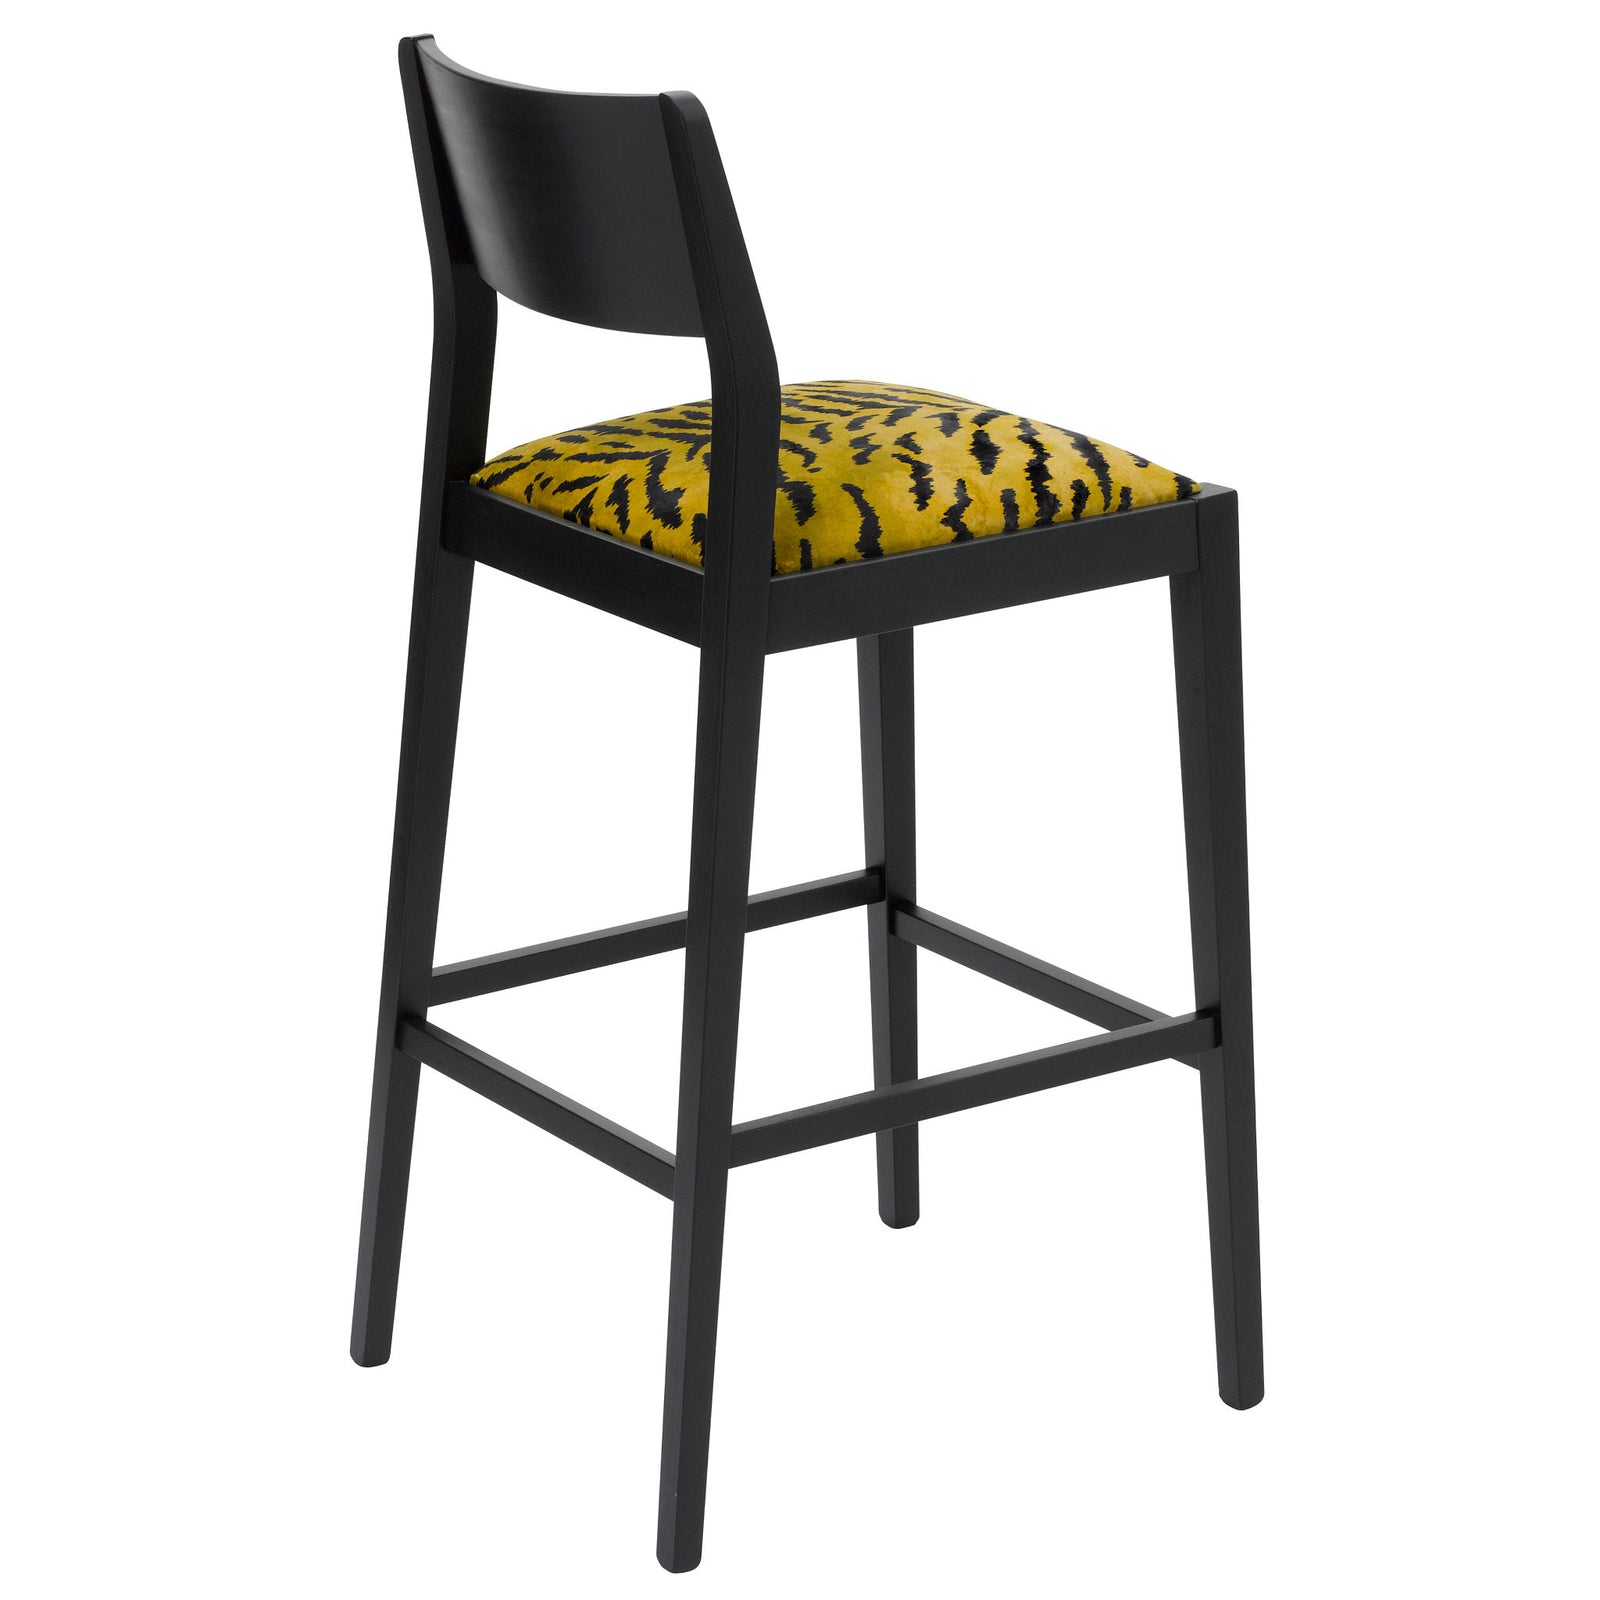 Rear view of the the Jack designer bar stool upholstered with the tigre design from the House of Hackney on luxury British velvet and silk finished in Jack black eggshell.